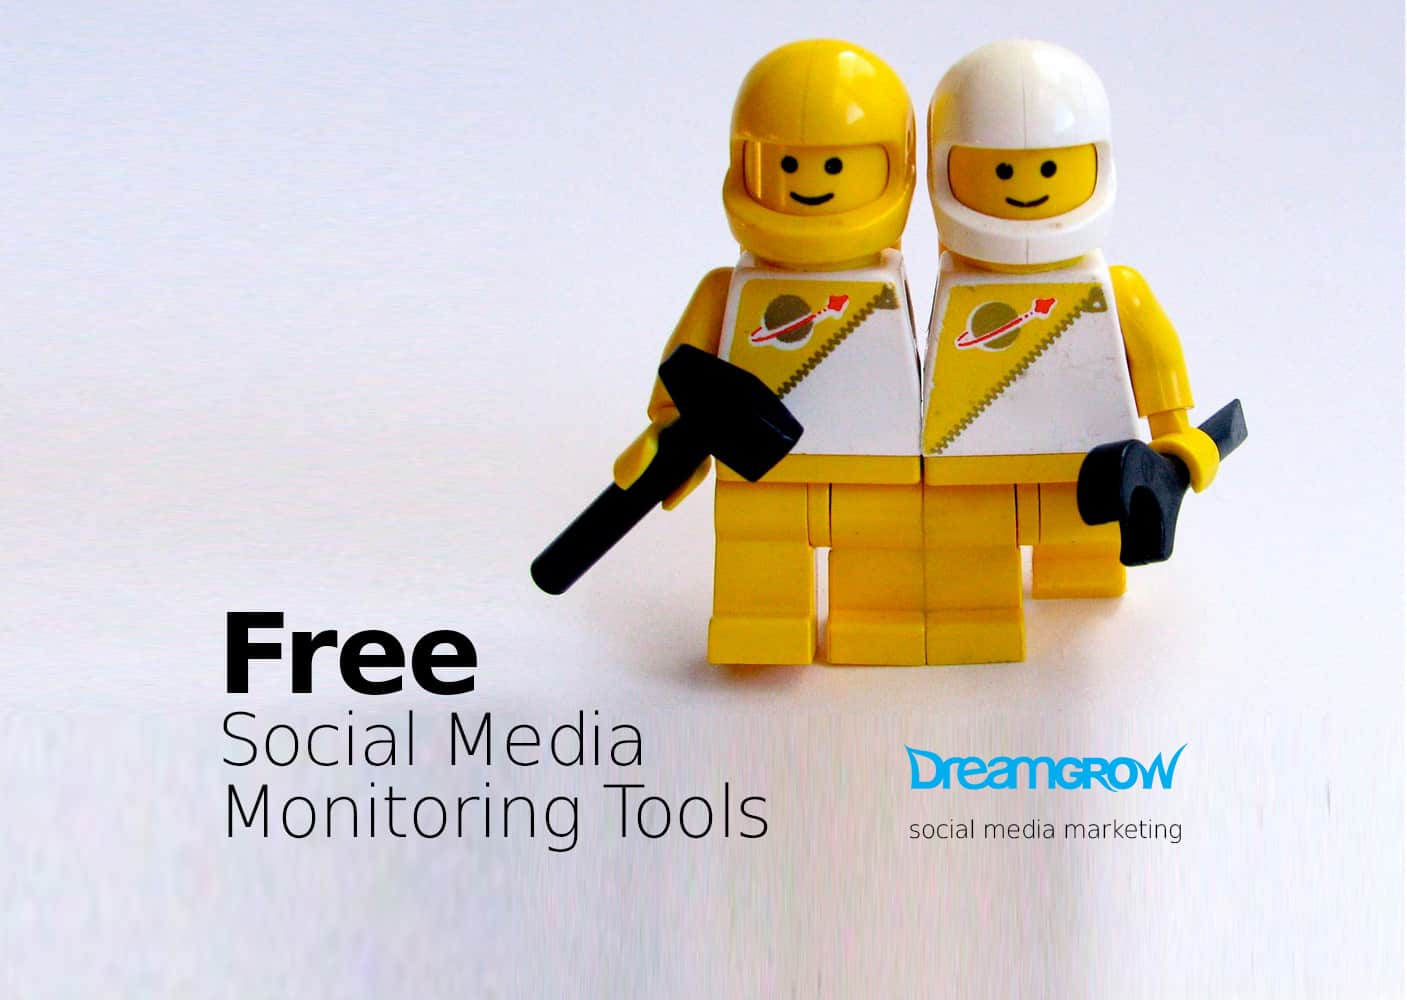 free-social-media-monitoring-tools.jpg